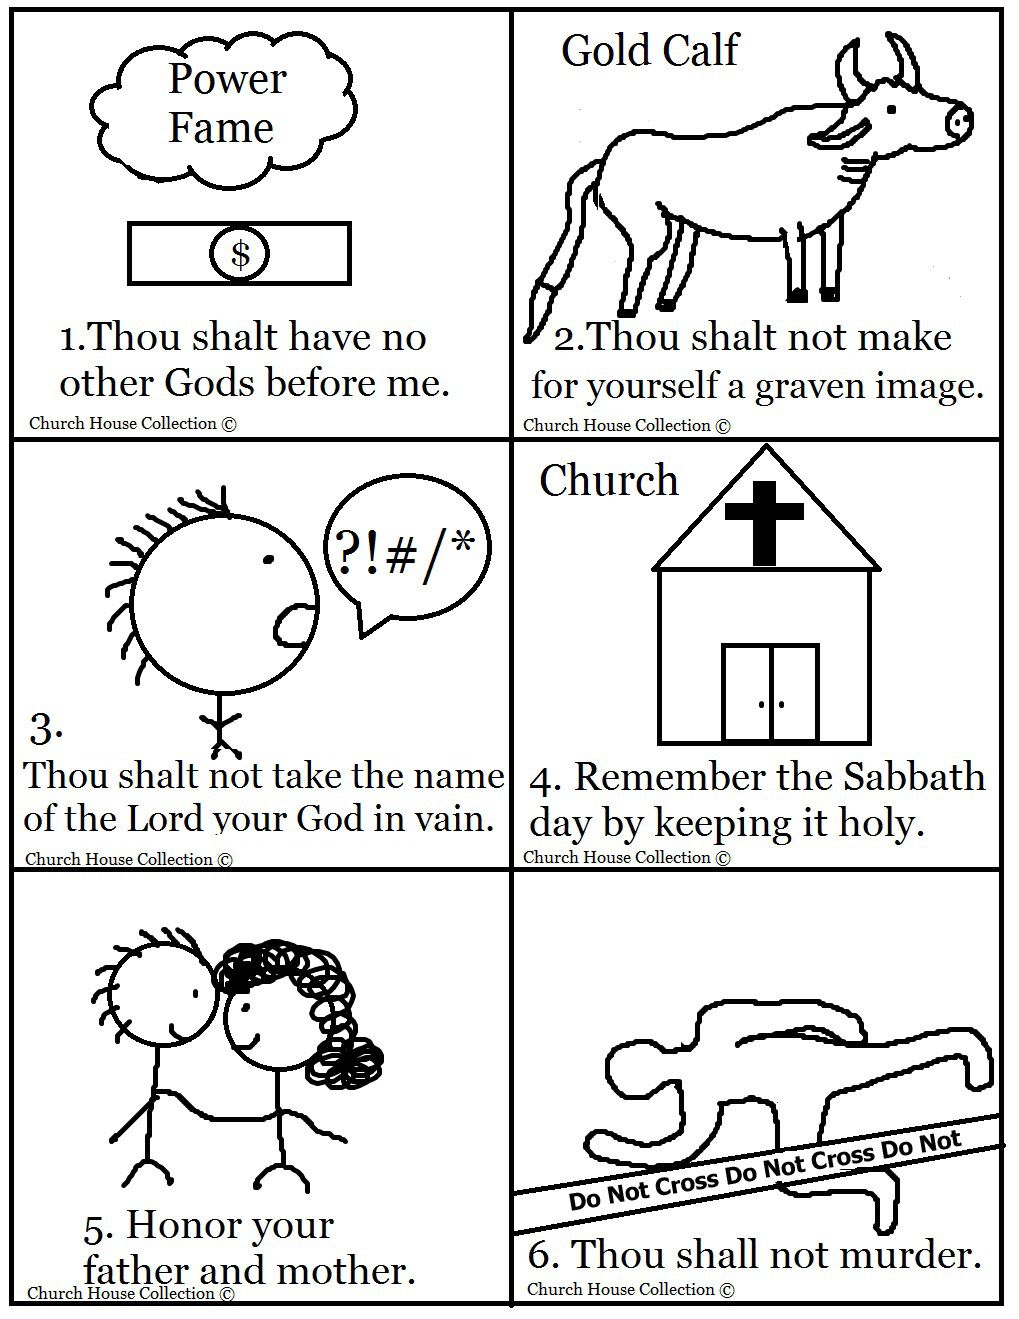 Influential image throughout ten commandments printable activities